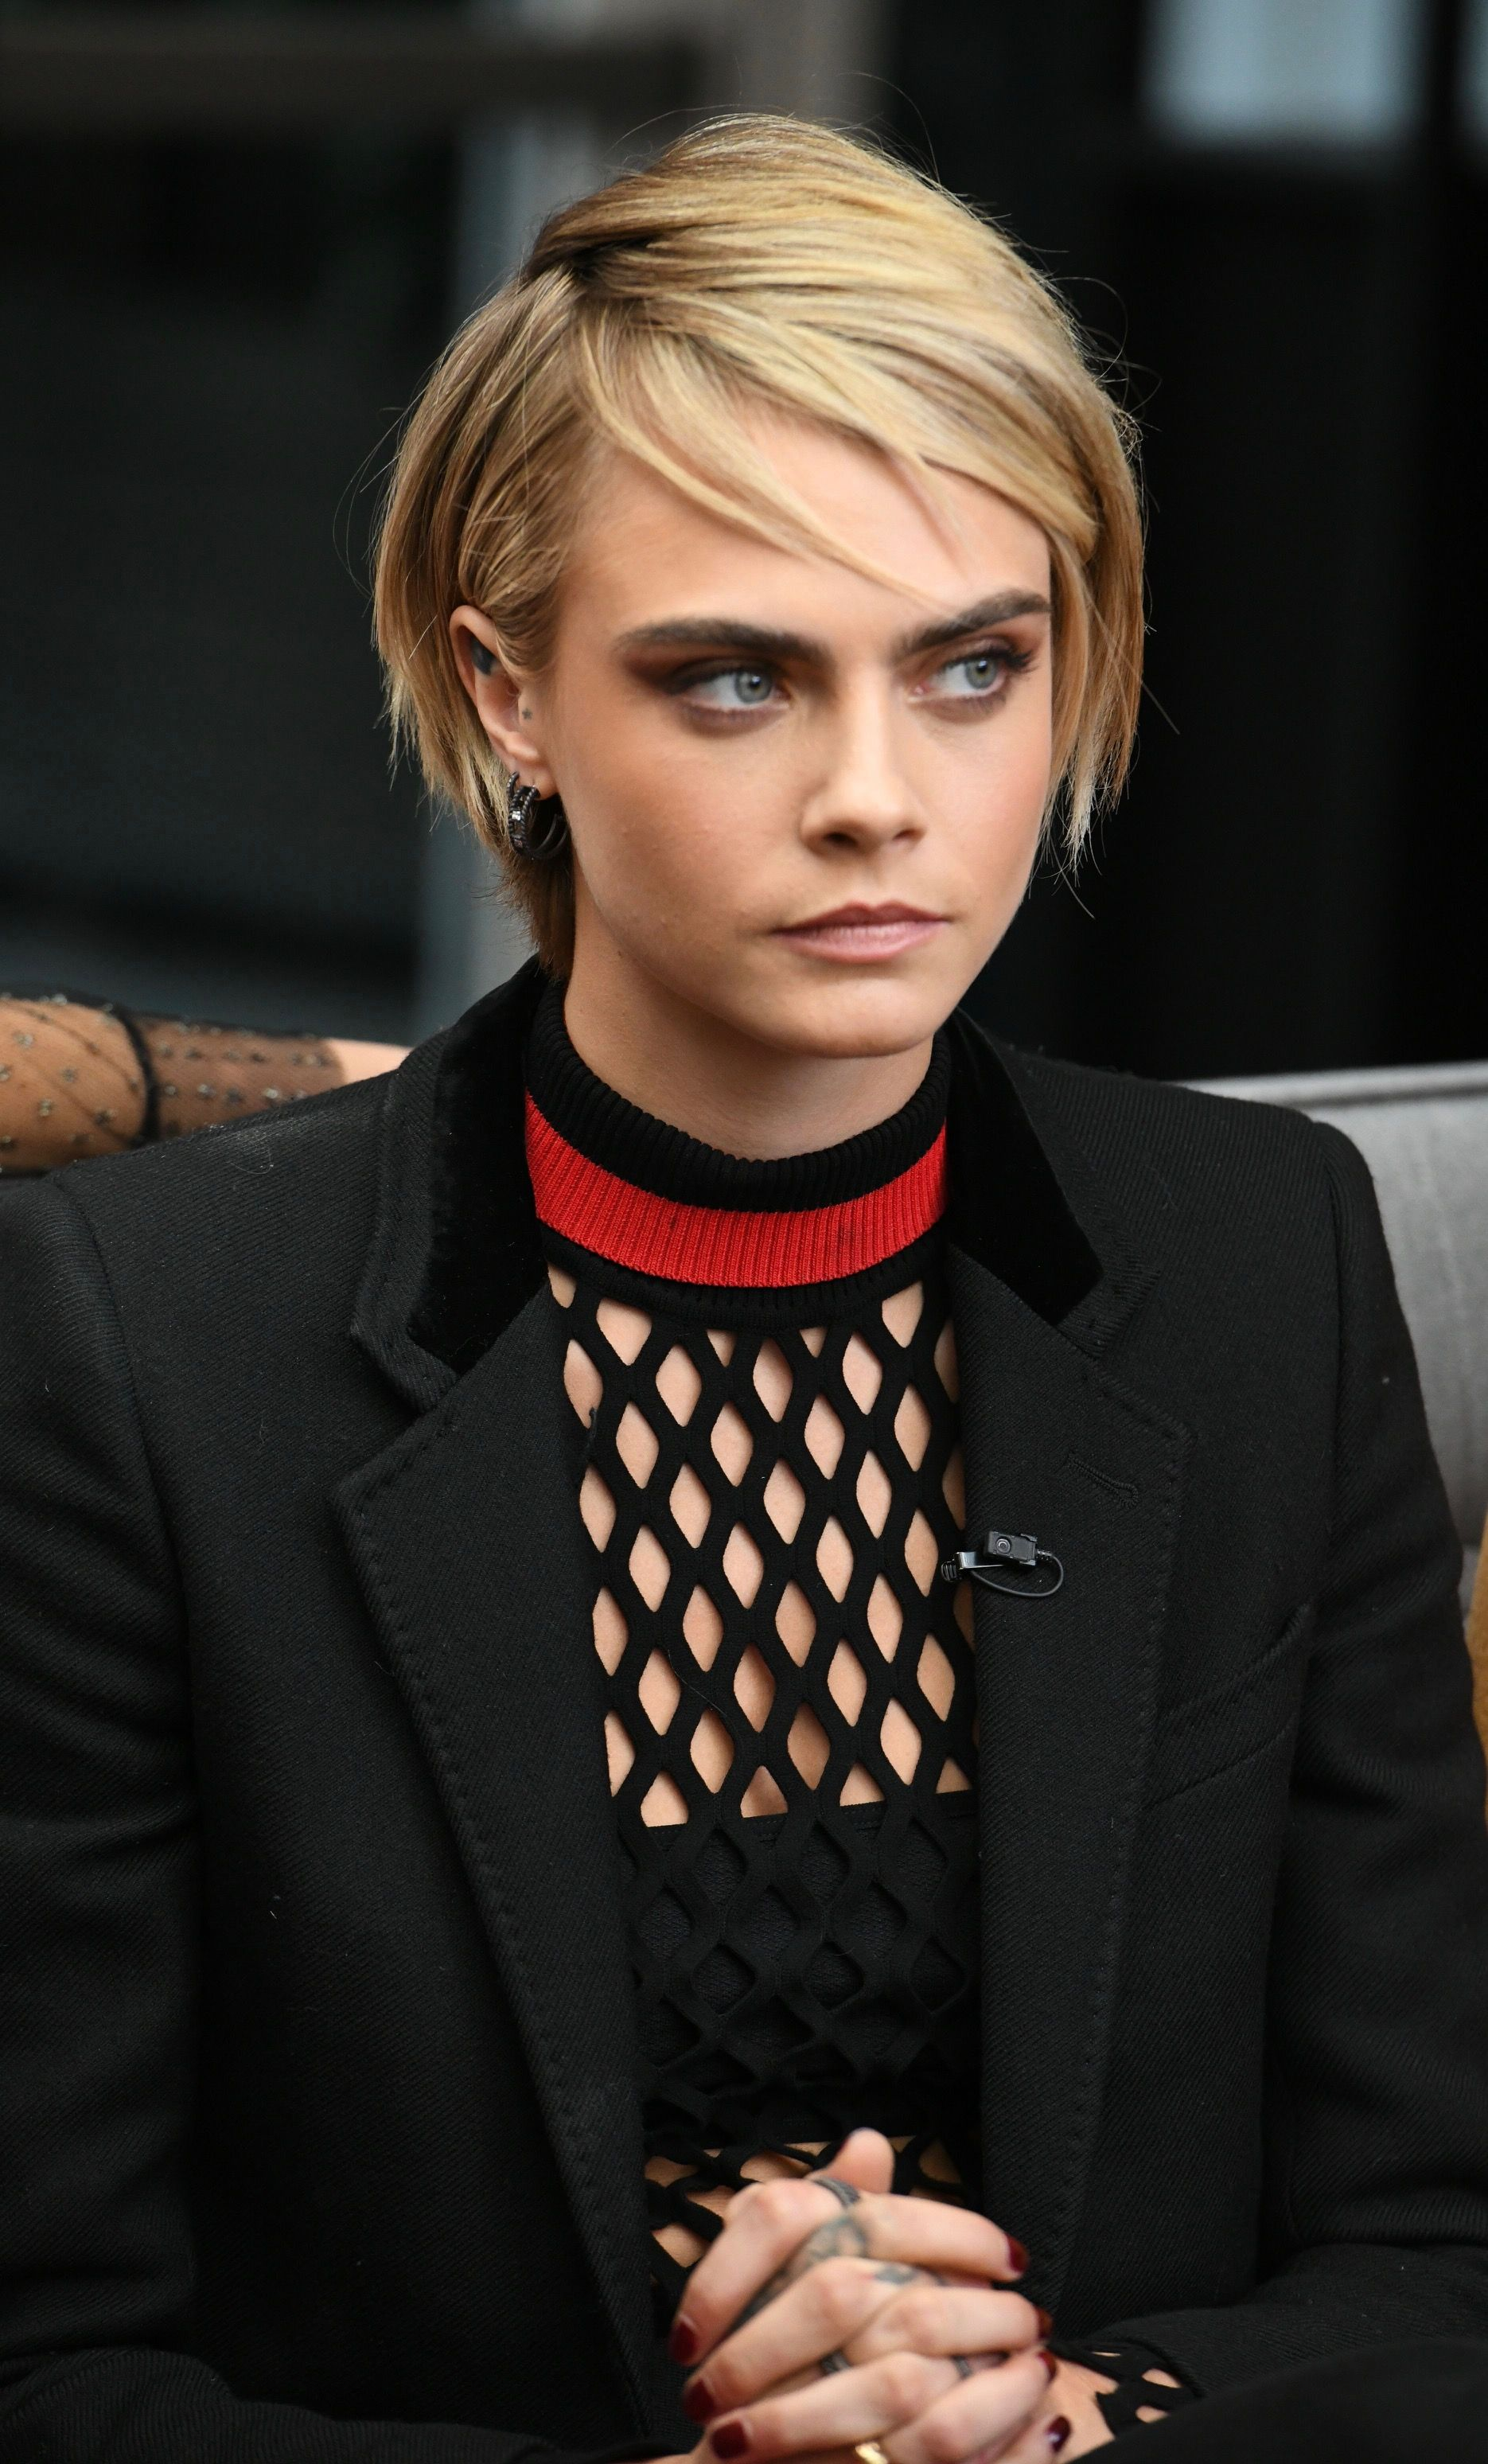 Pin by shahbaaz Ahmed on cara delivinge  Cara delevingne hair